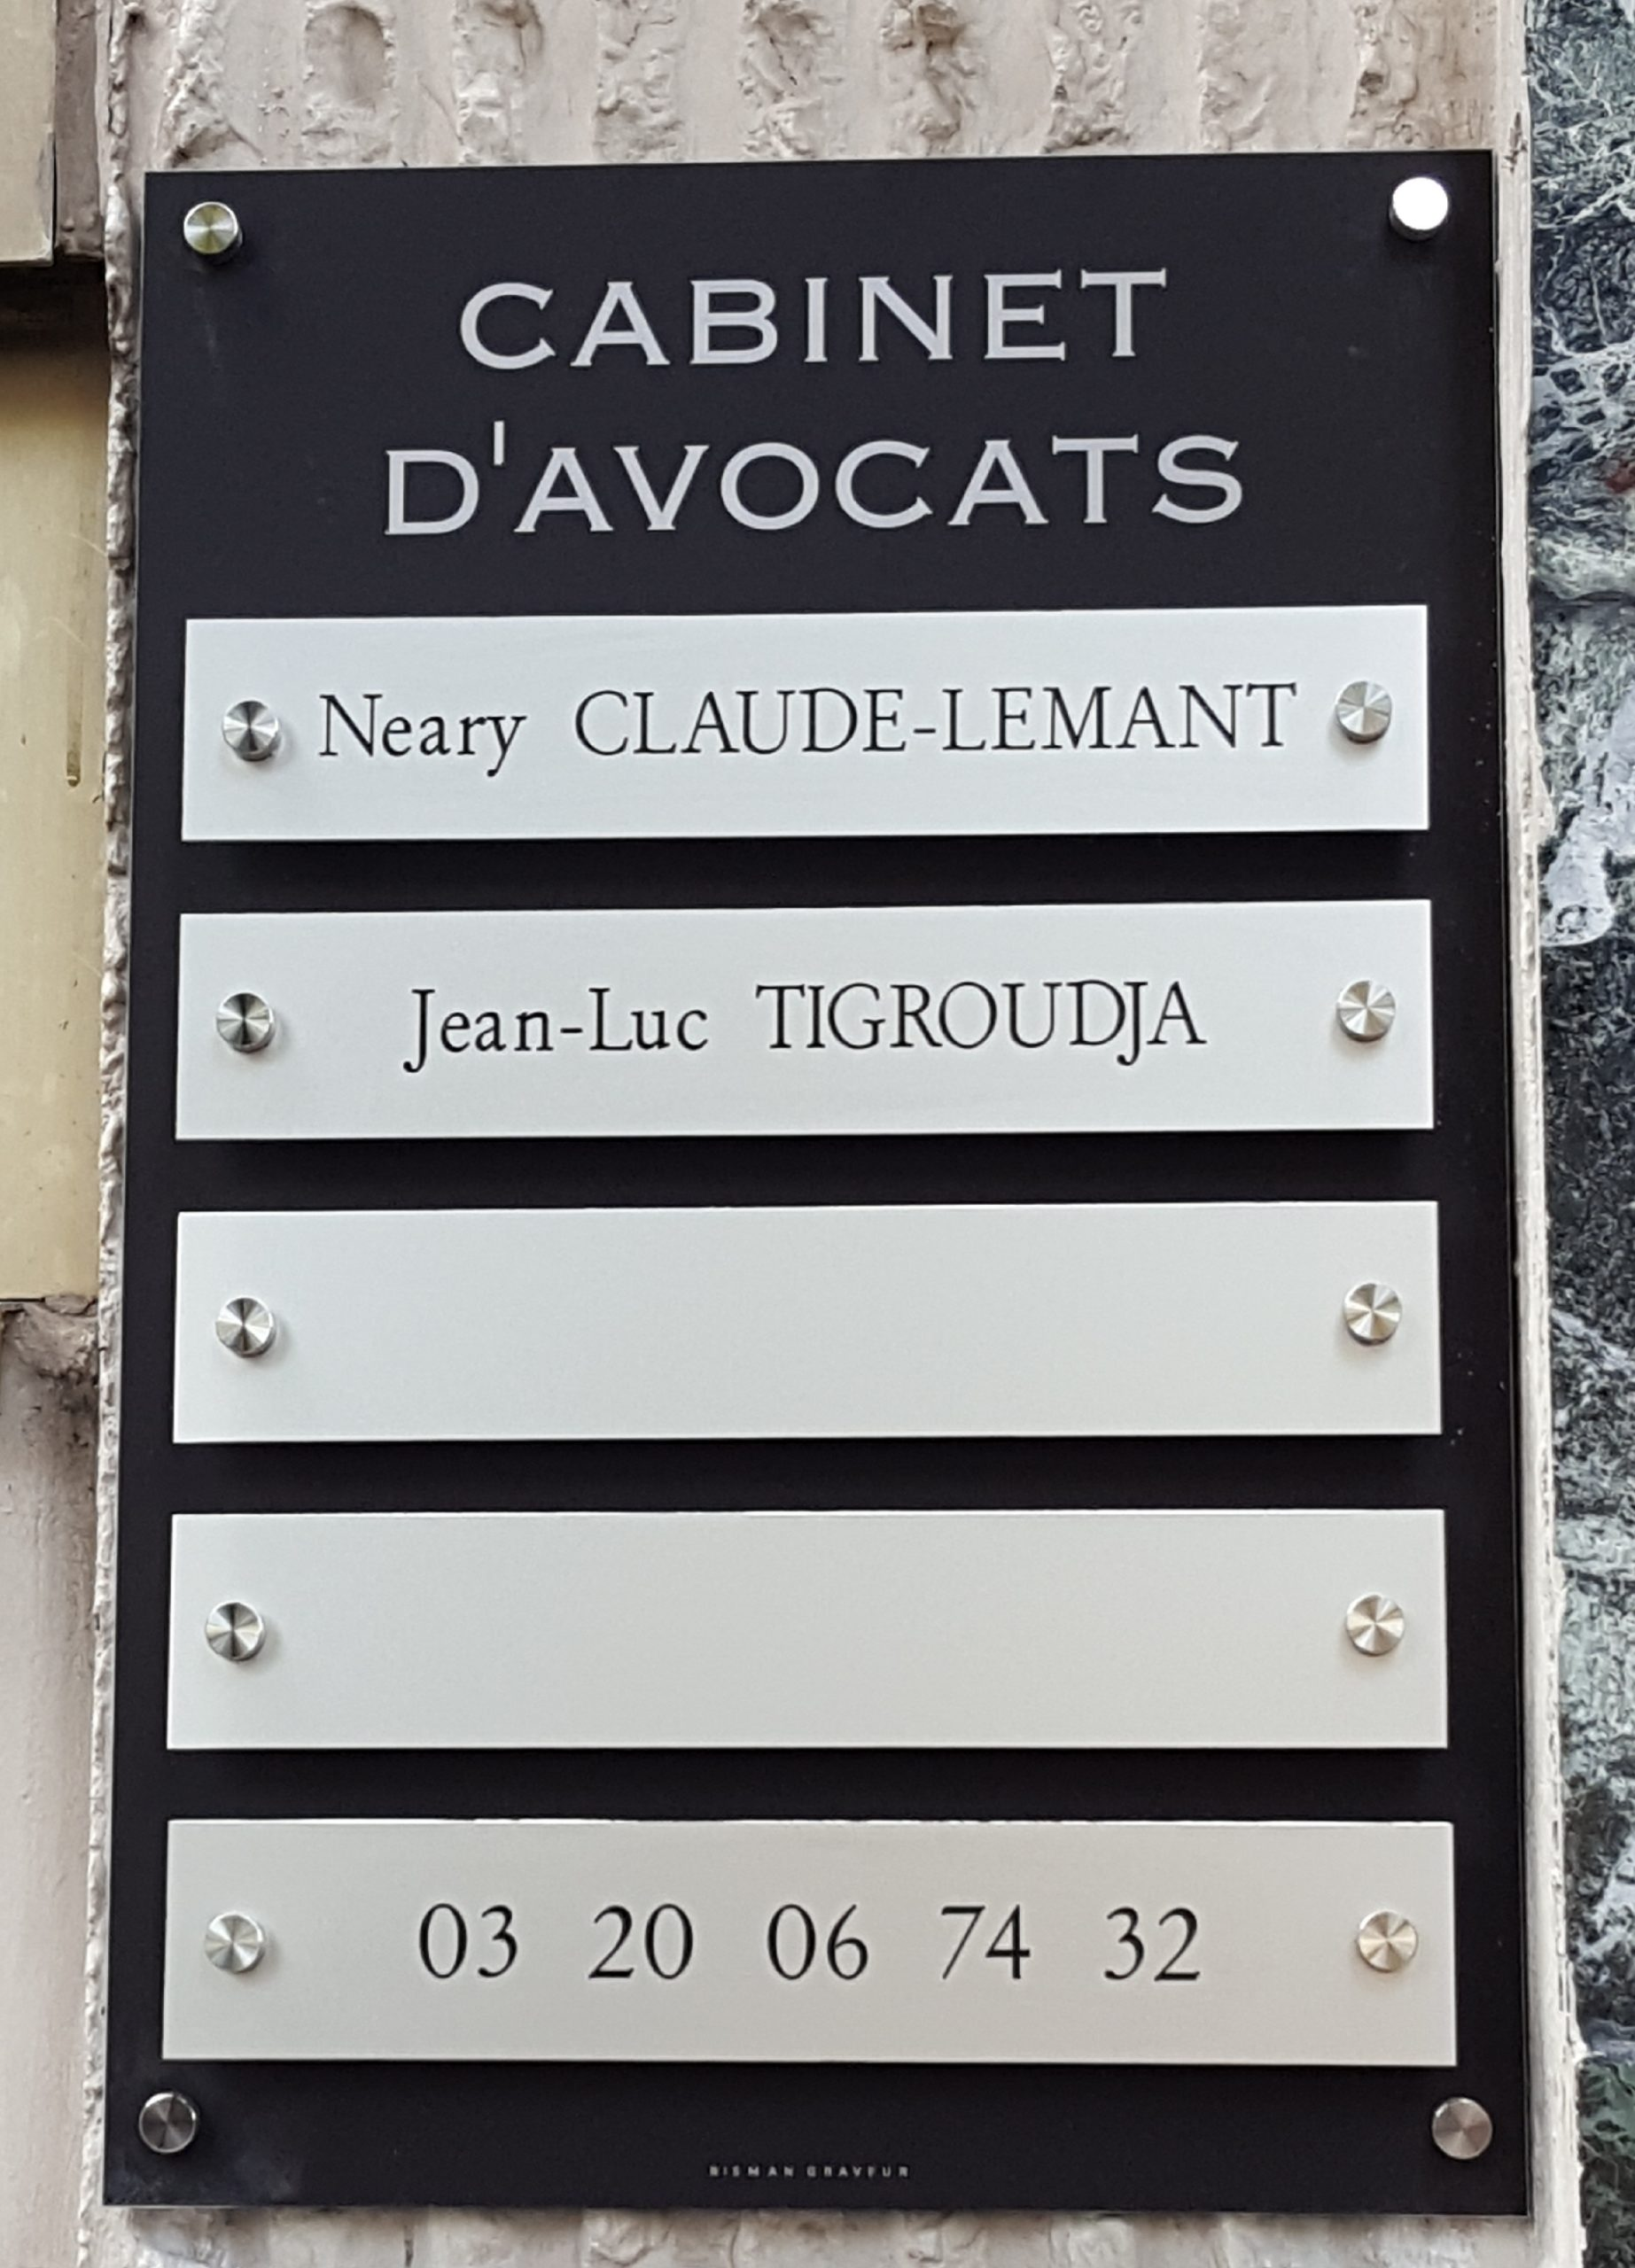 Neary CLAUDE-LEMANT Avocat Lille